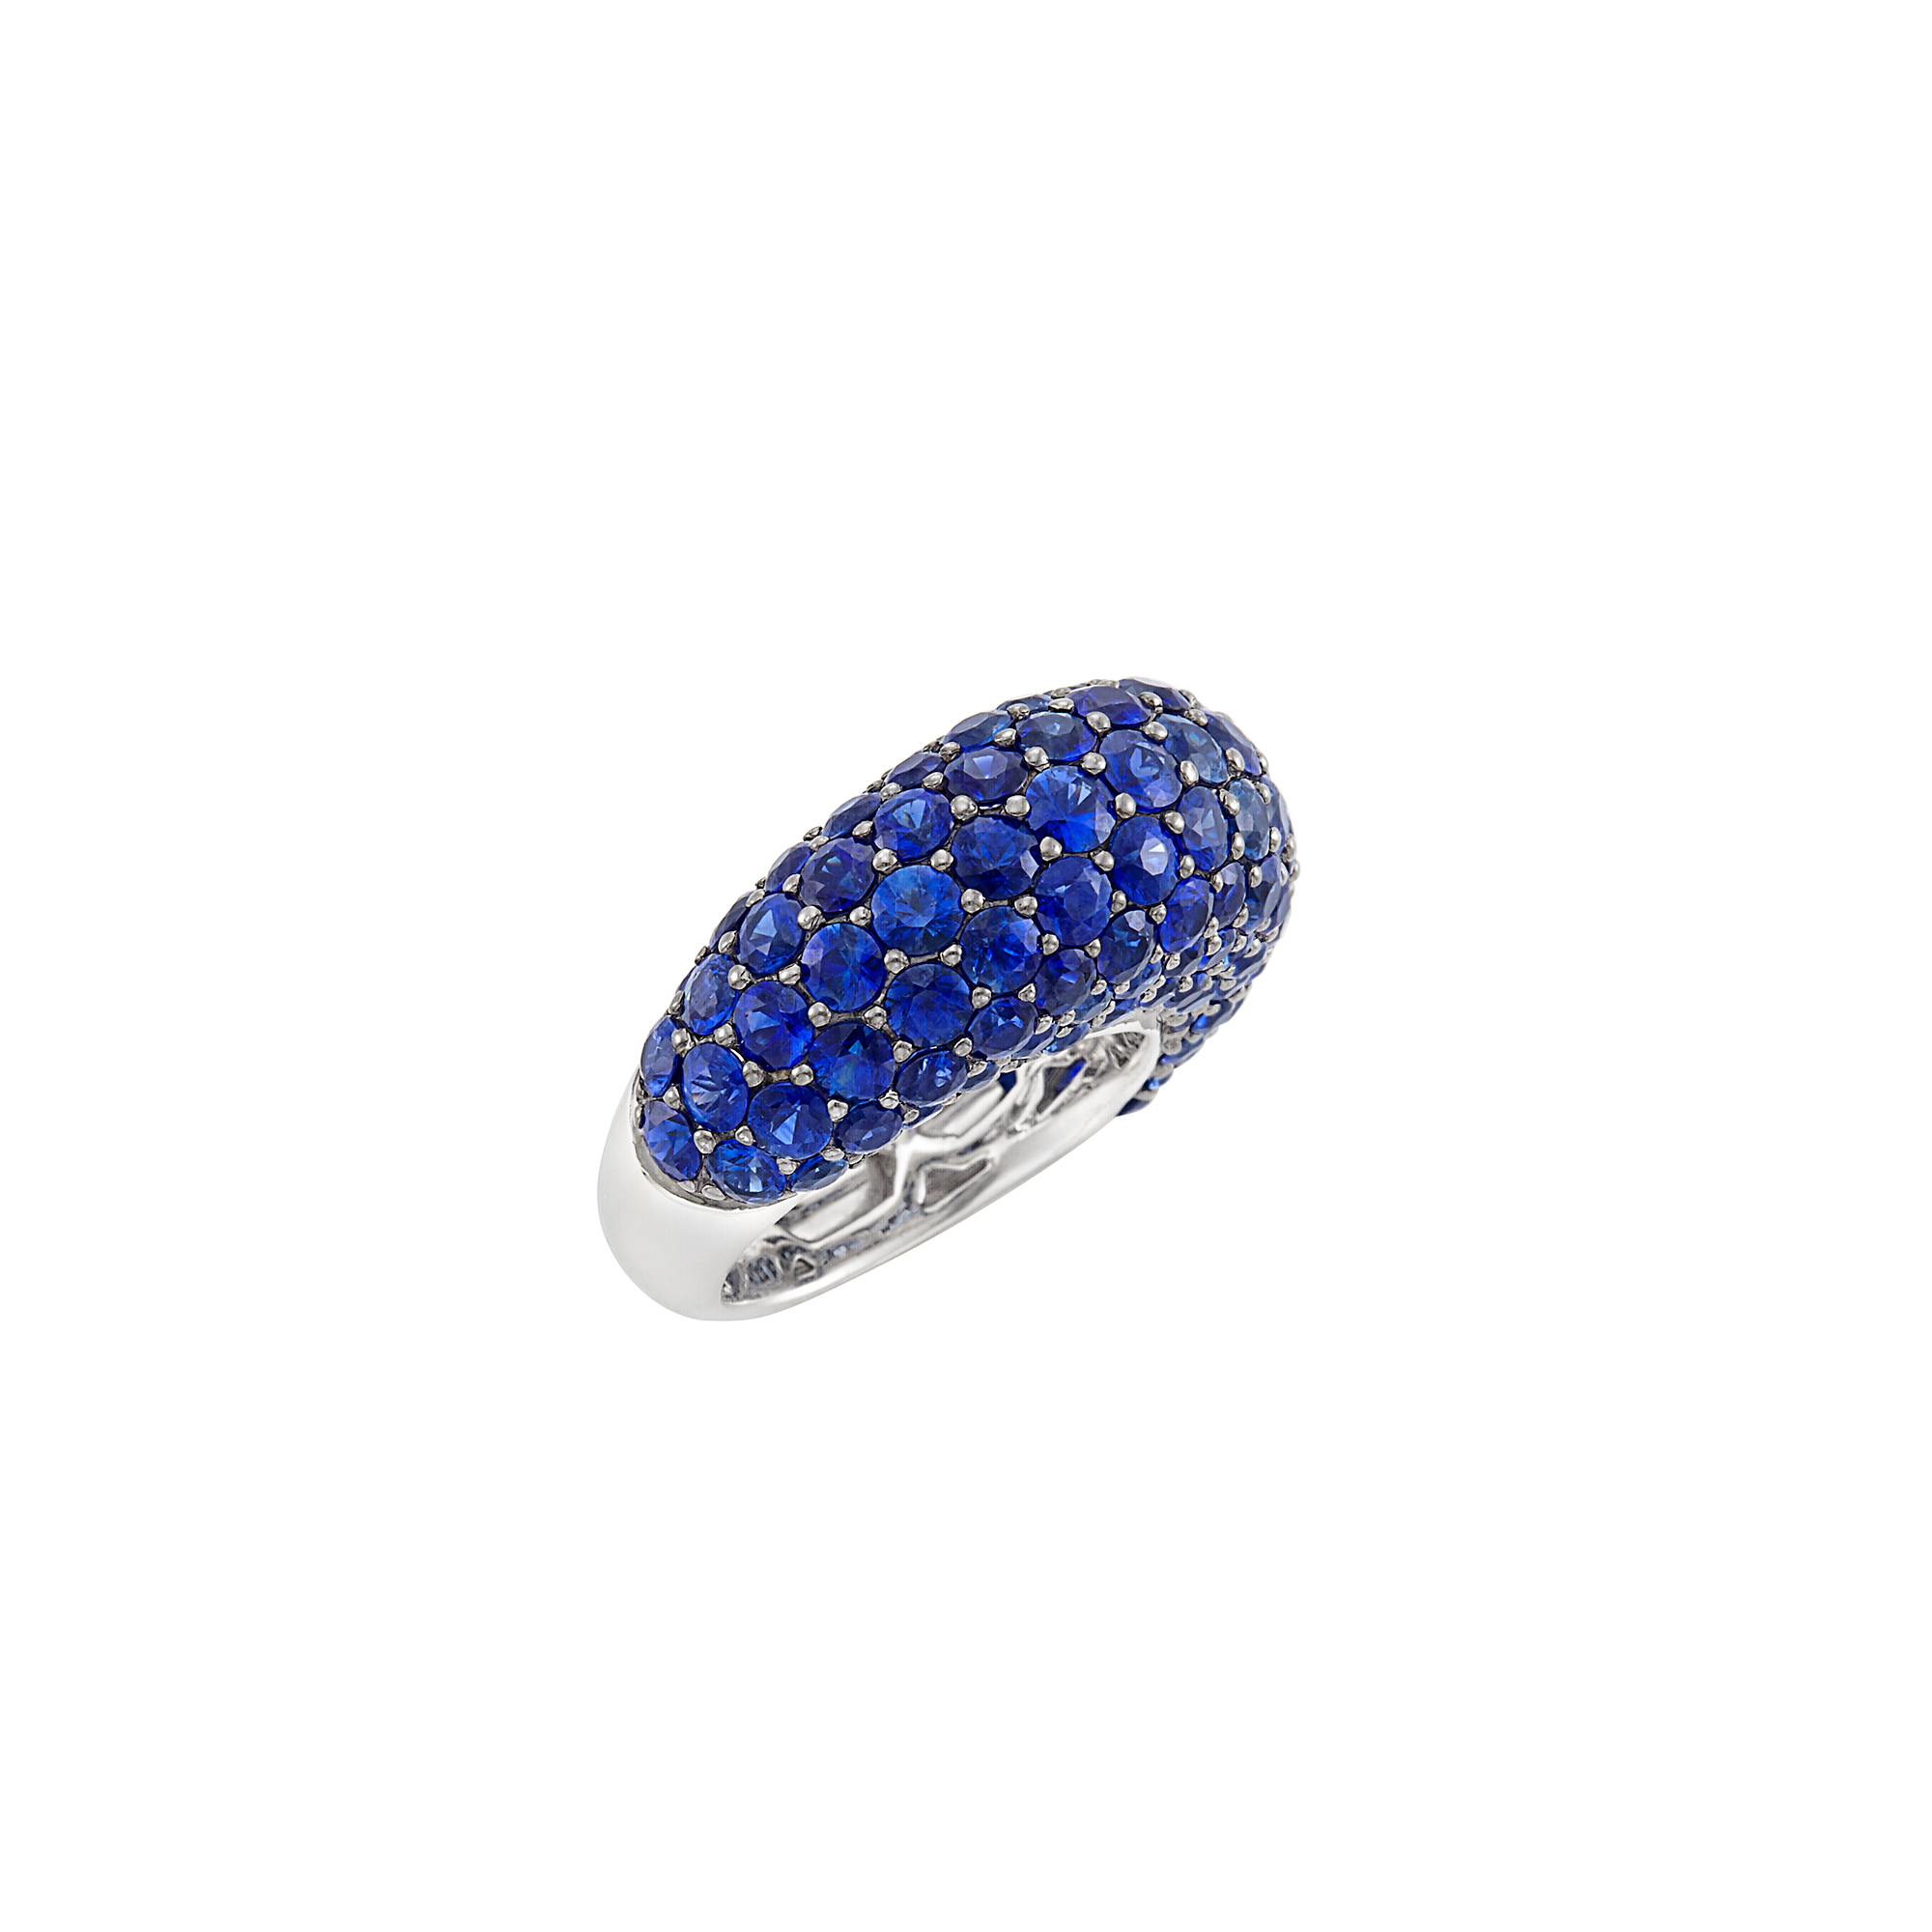 Lot image - White Gold and Sapphire Bombé Ring, Piranesi